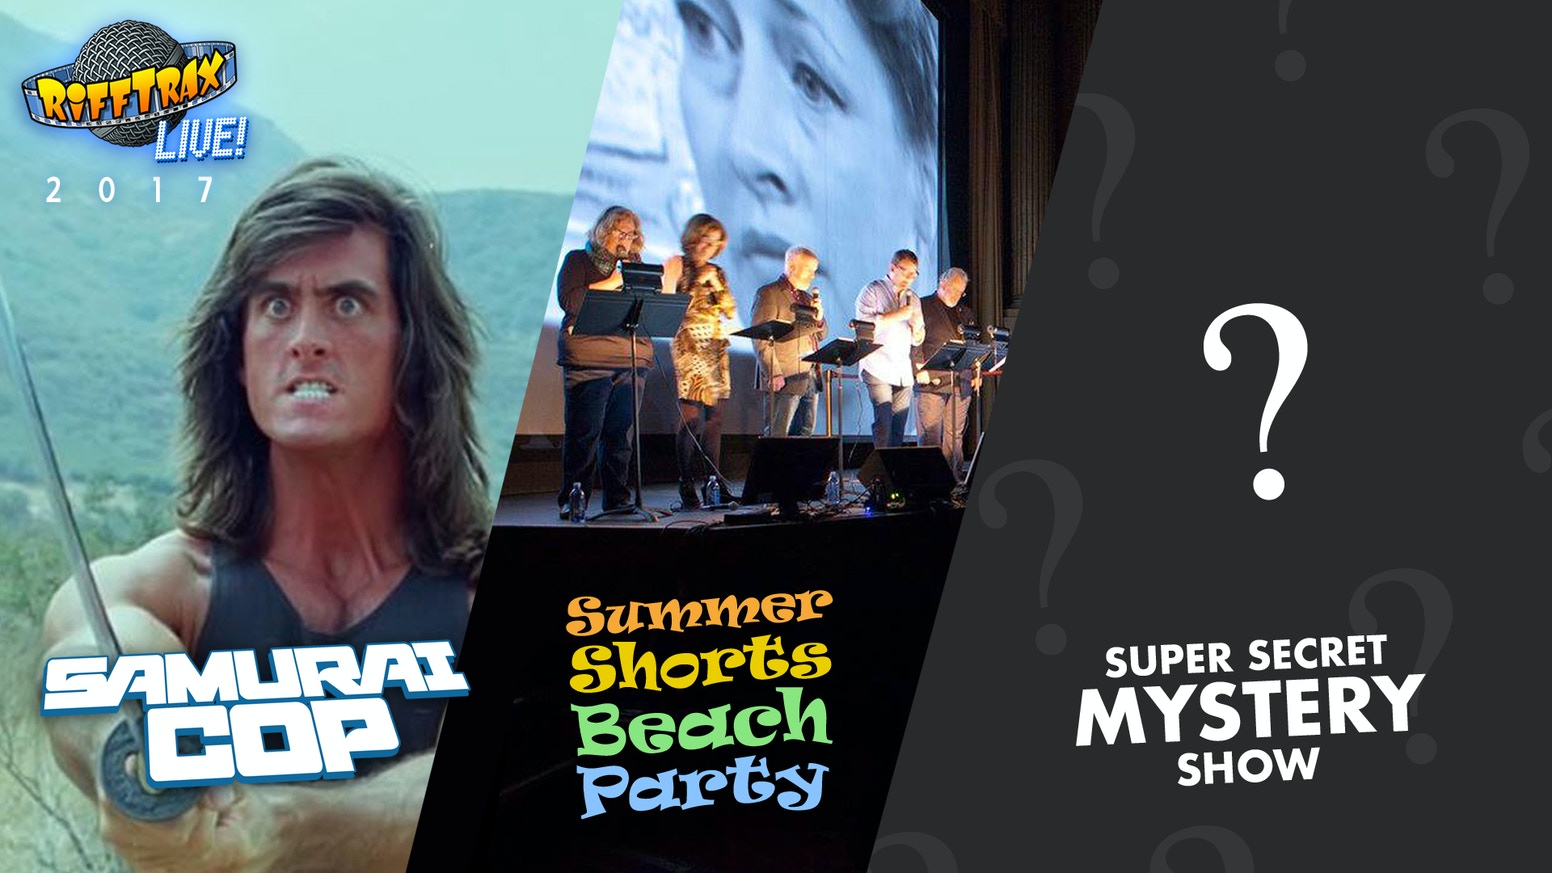 RiffTrax Live '17: Samurai Cop, Beach Party & Mystery Title